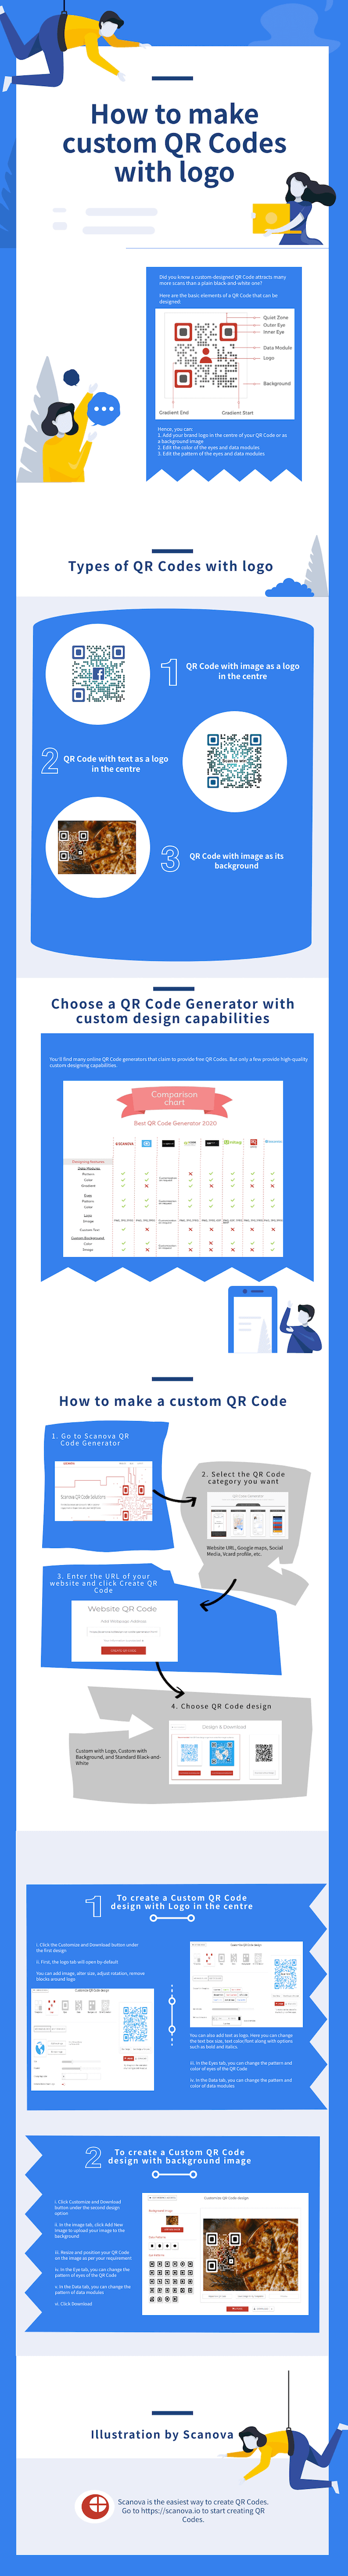 Custom QR Code with logo: Infographic